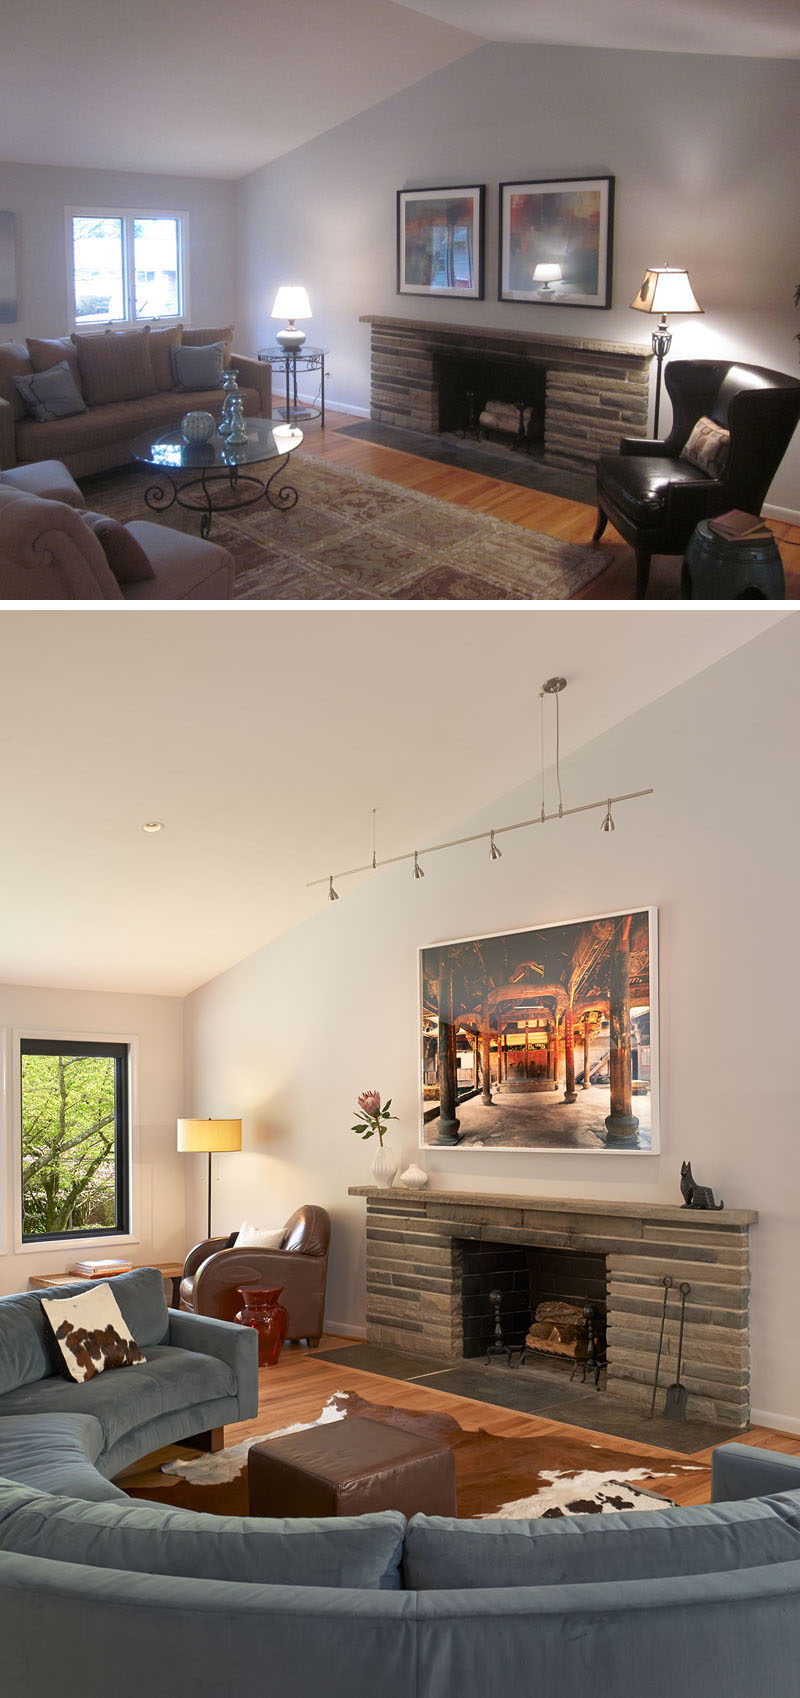 BEFORE & AFTER - In this living room, a rounded blue sectional with a small leather ottoman and cowhide rug offer a cozy spot to sit by the fireplace. In the corner, a brown leather armchair provides a great reading nook.